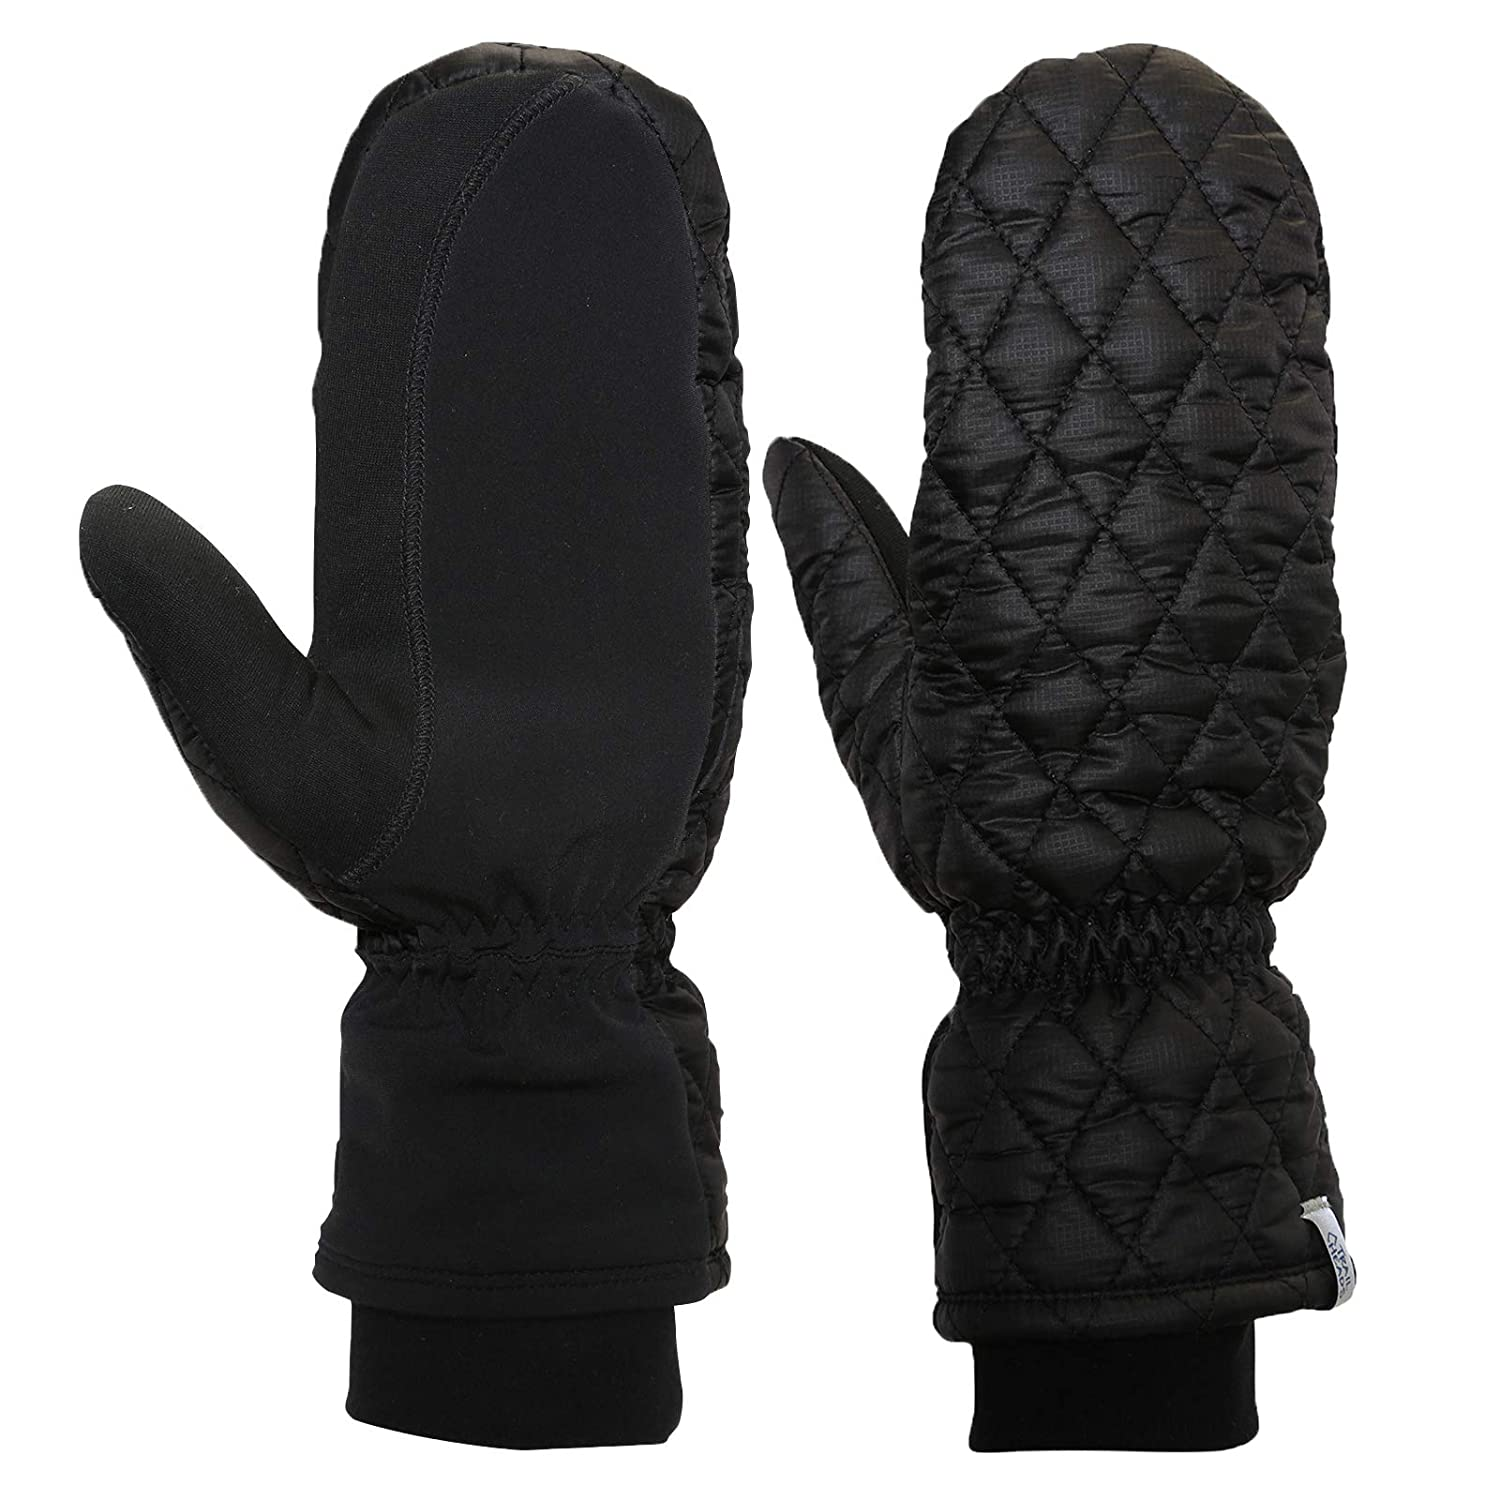 Insulated Hand Protection TrailHeads Touchscreen Quilted Running Mittens for Women